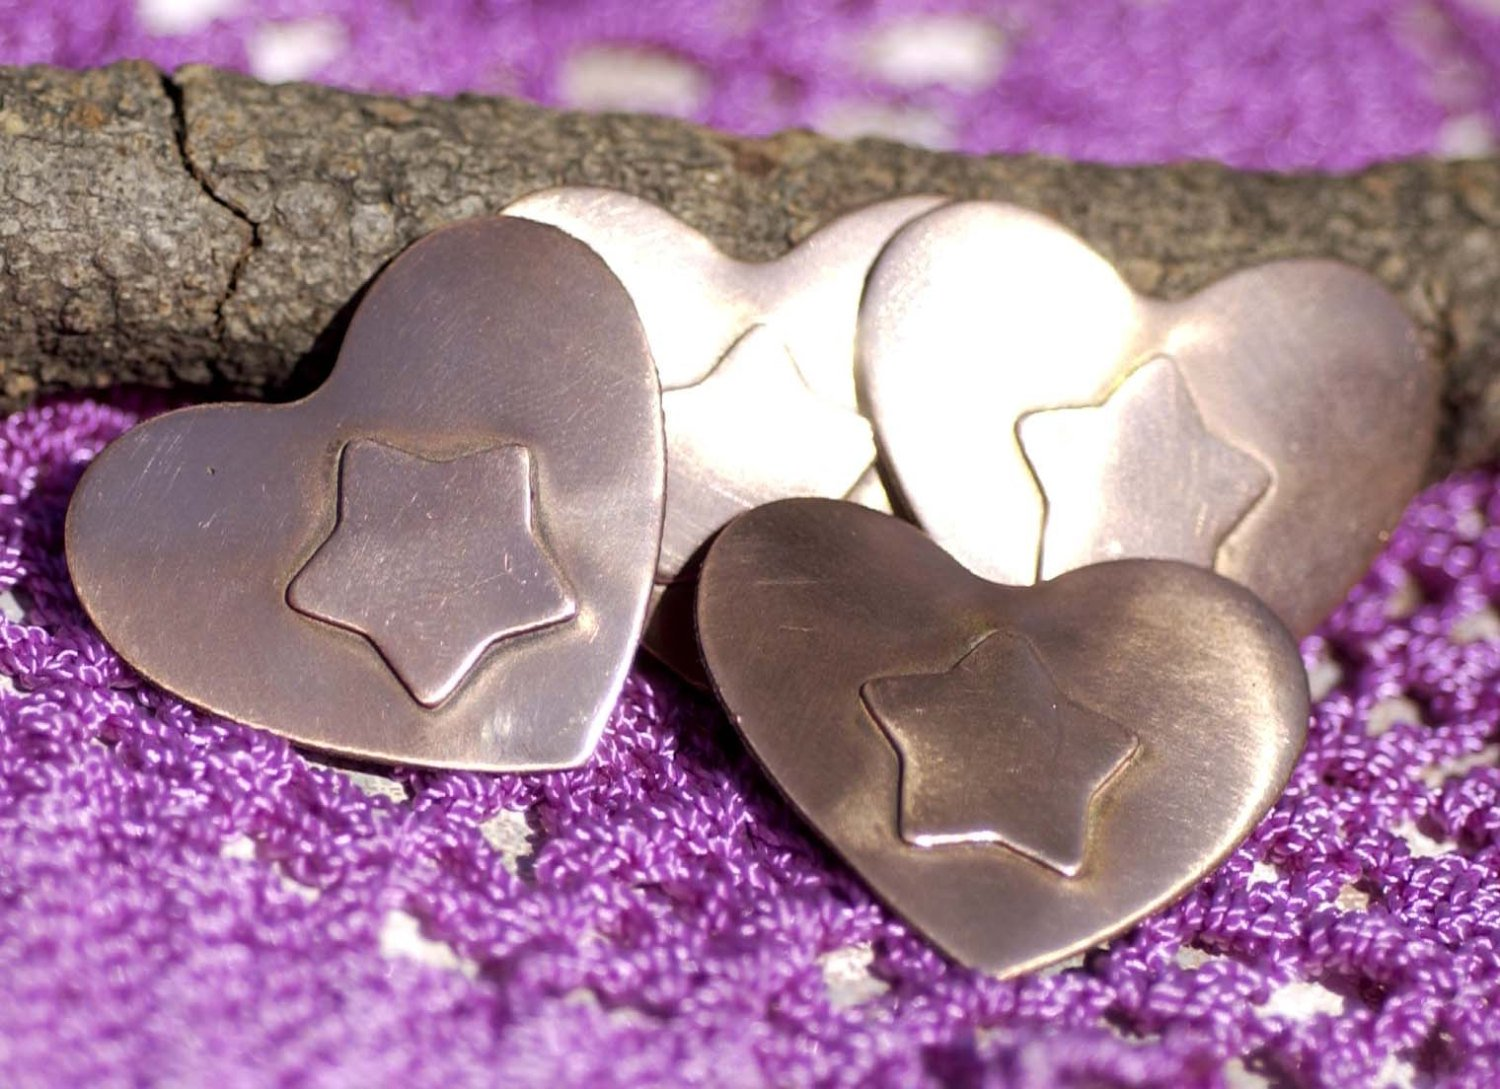 Heart shapes with Star Embossed on Heart Blank Cutout for Enameling Stamping Texturing Metalworking Jewelry Making Blanks